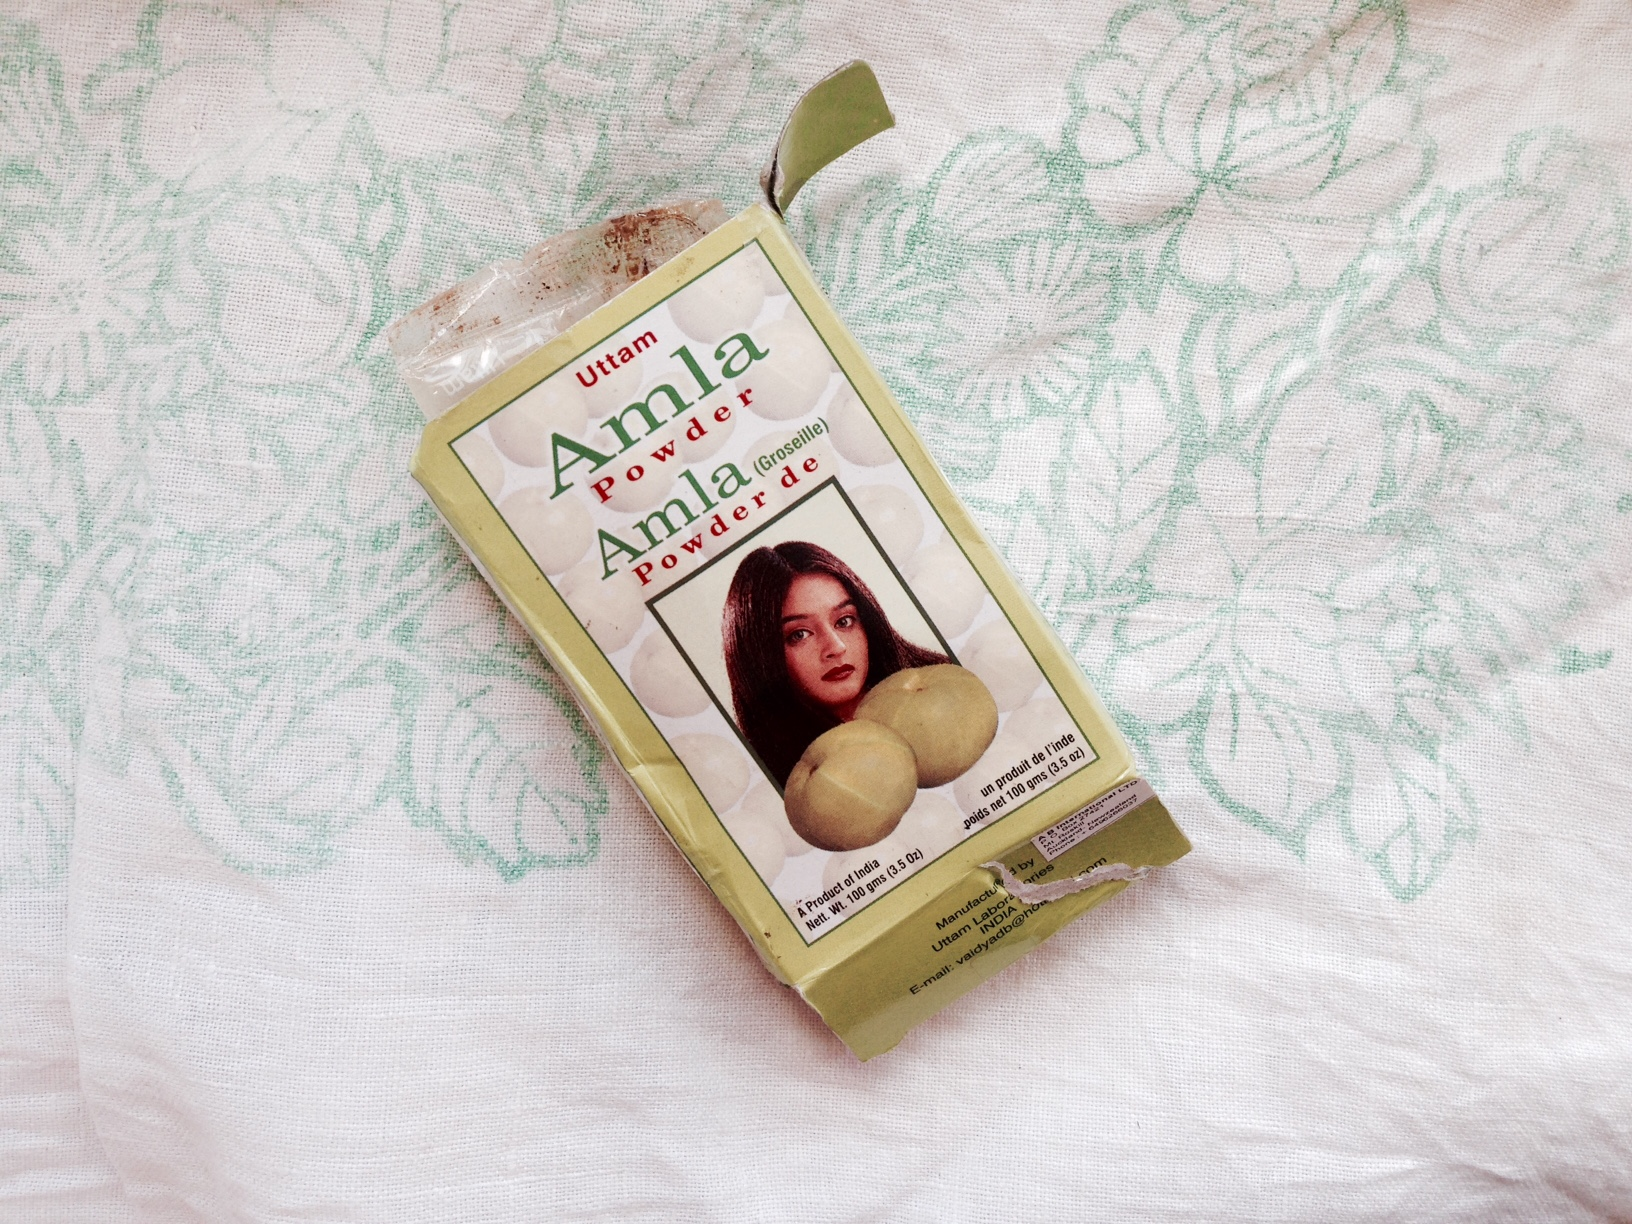 How to use Amla for hair